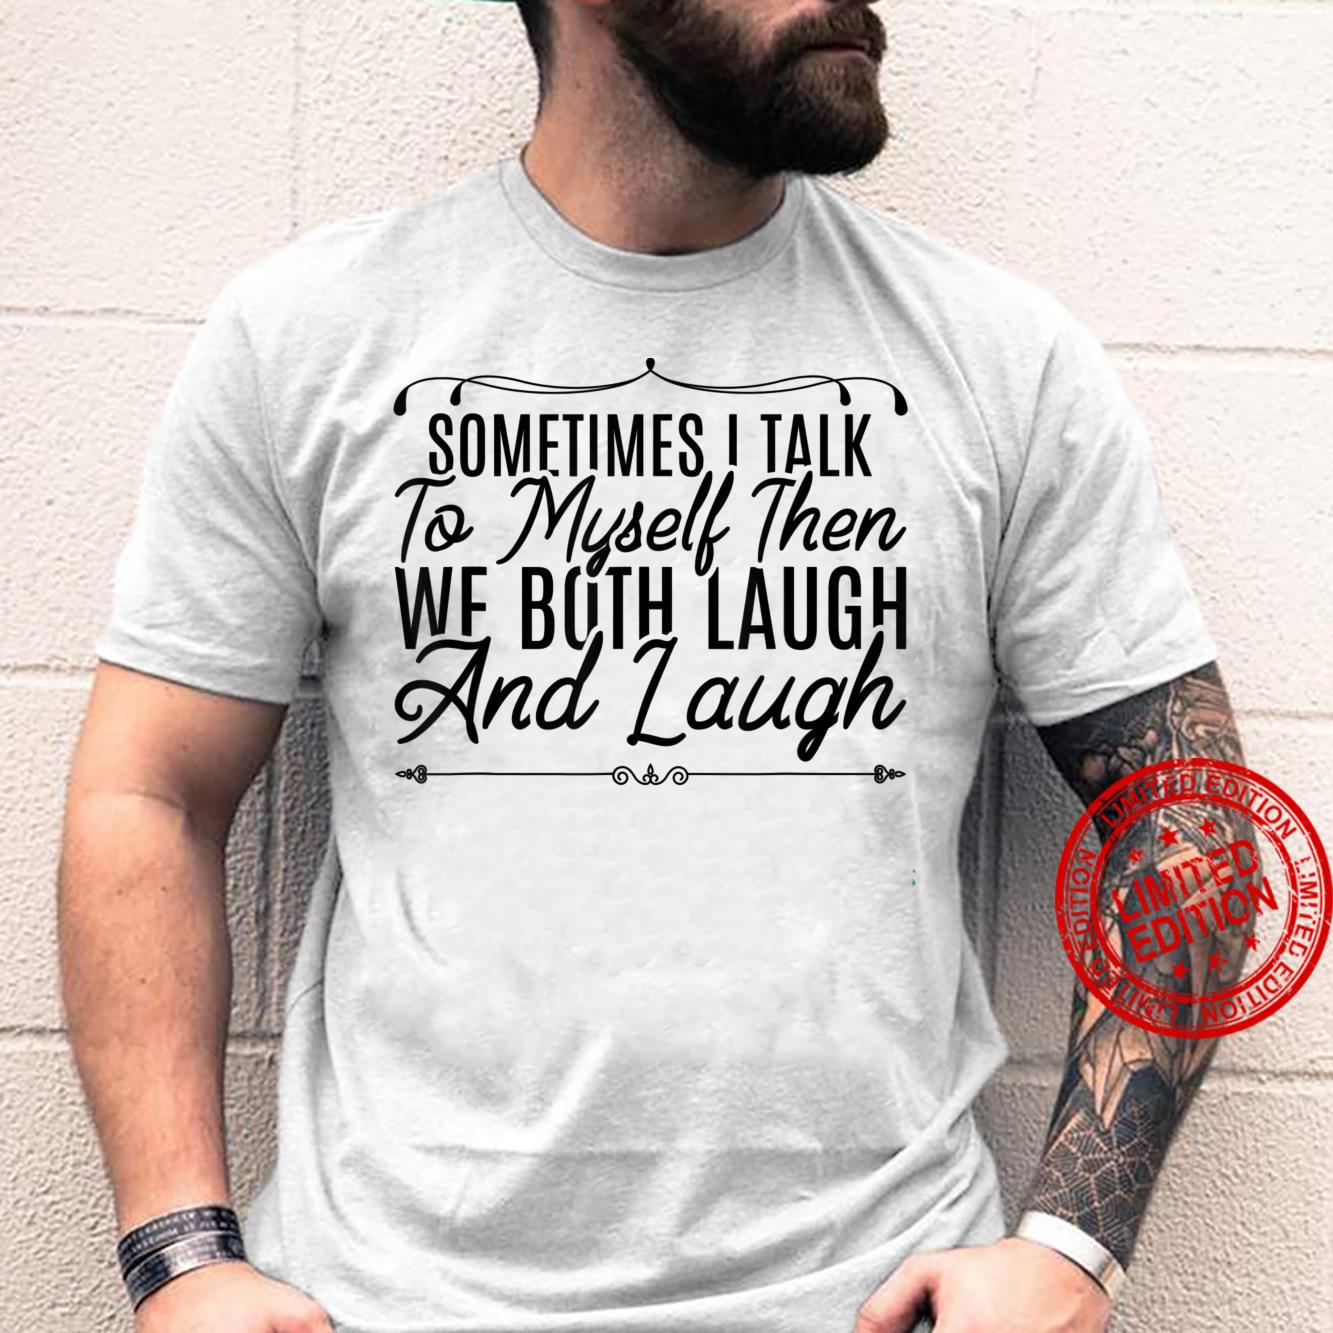 Sometimes I Talk To Myself Then We Both Laugh and Laugh Shirt